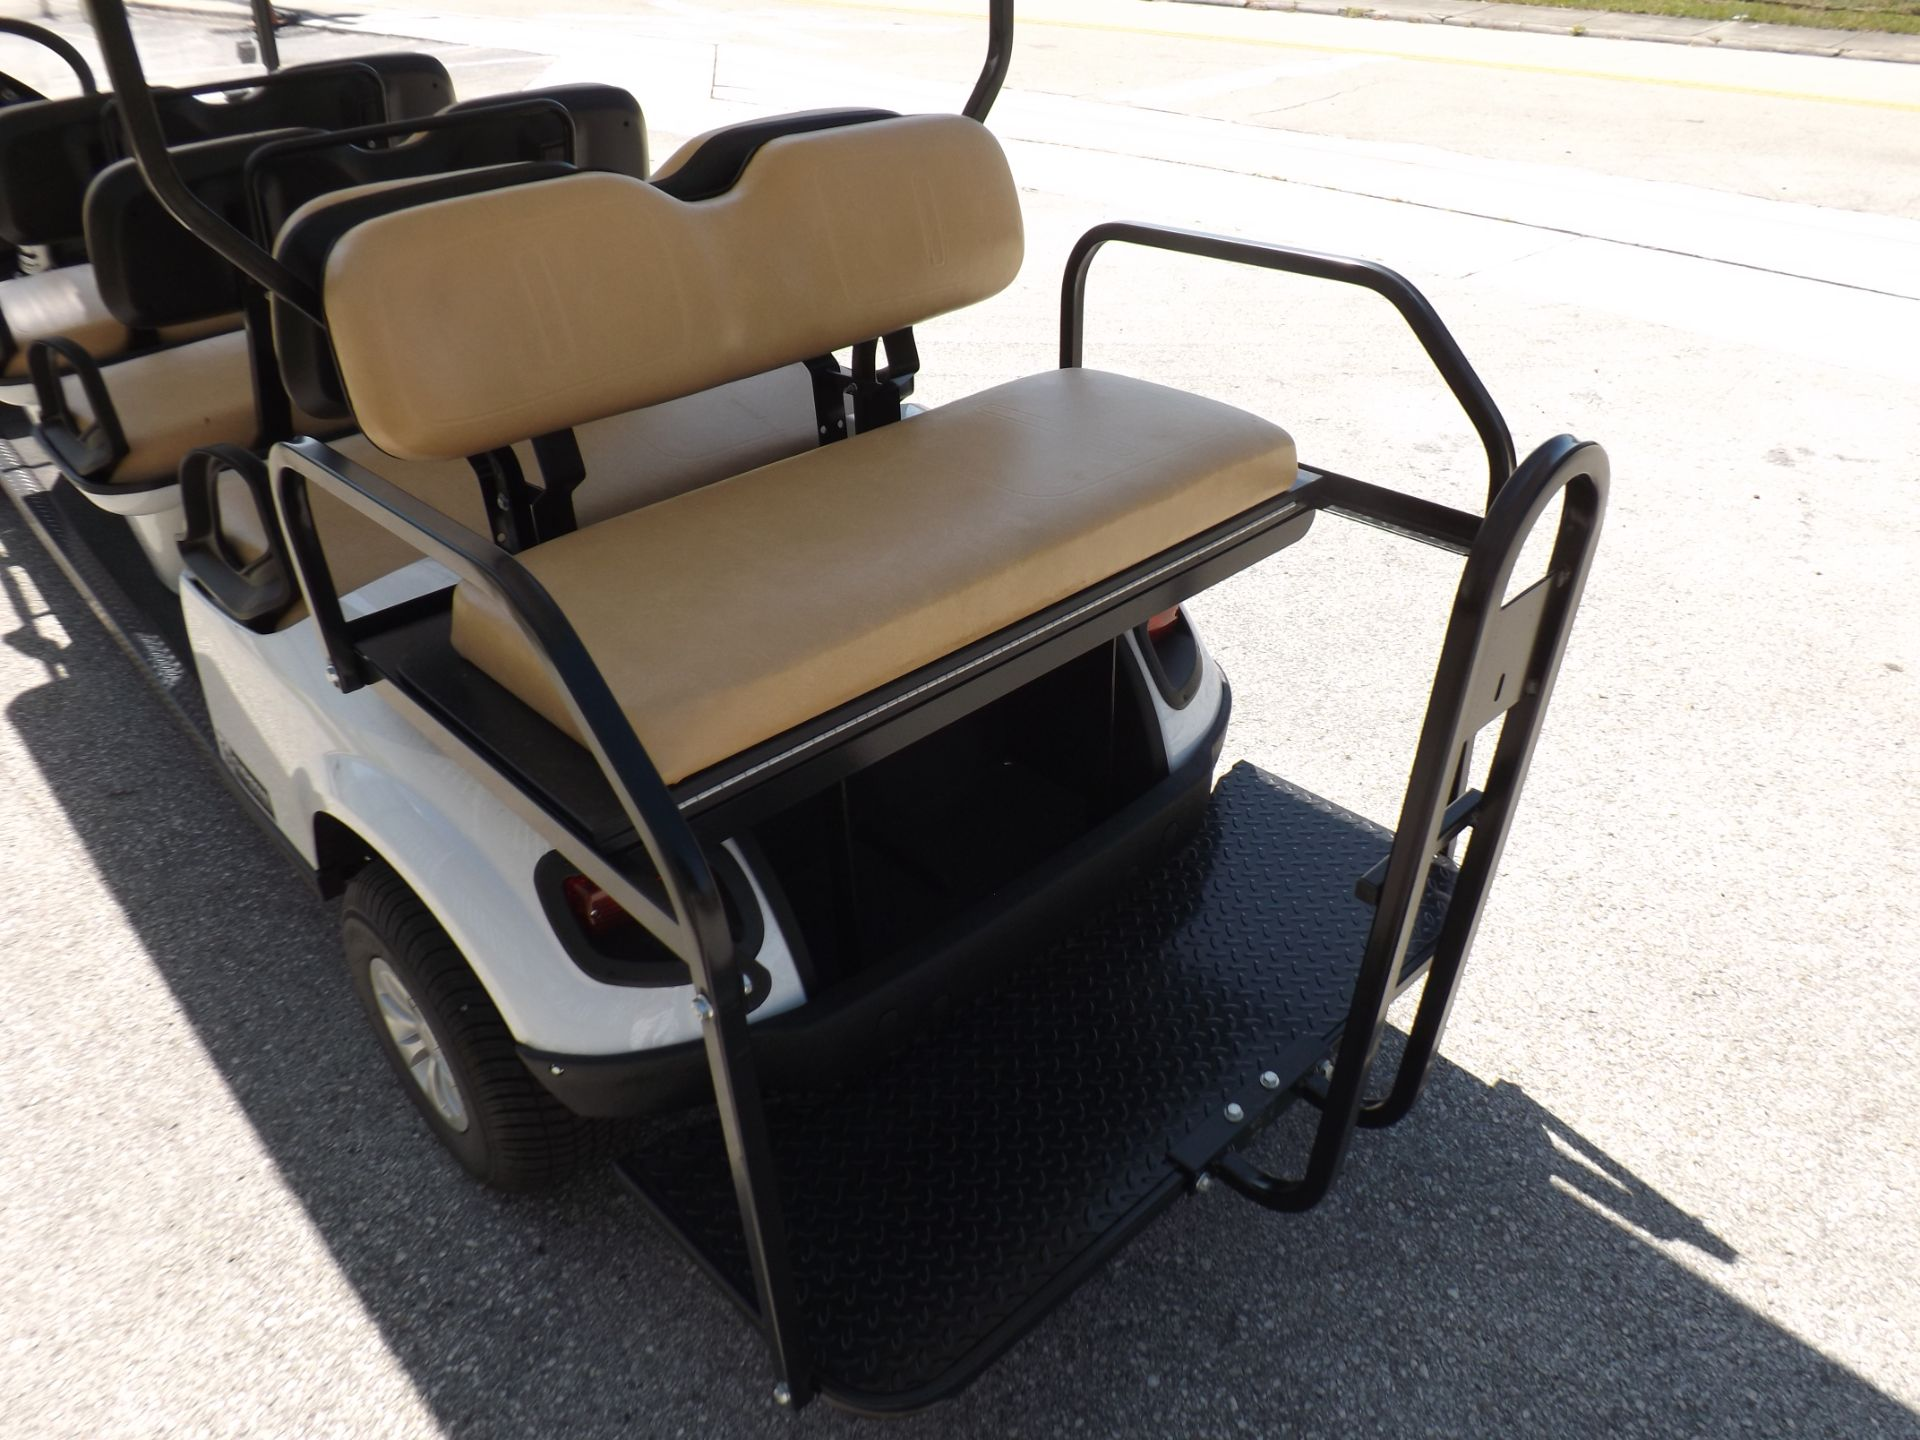 2019 Cushman Shuttle 8 EFI Gas in Lakeland, Florida - Photo 16